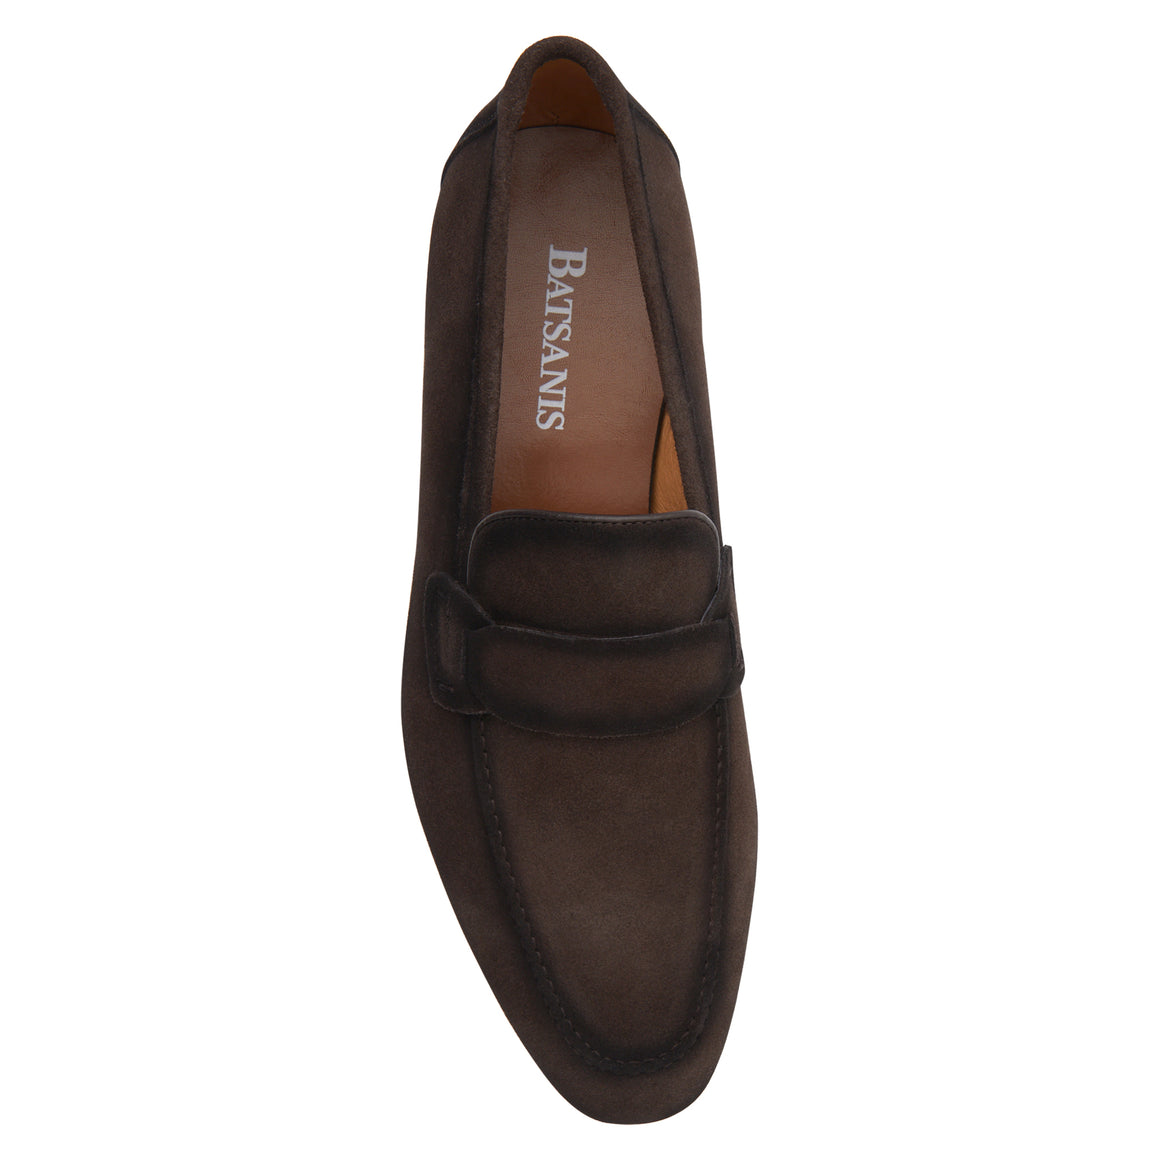 David Brown Suede Loafers